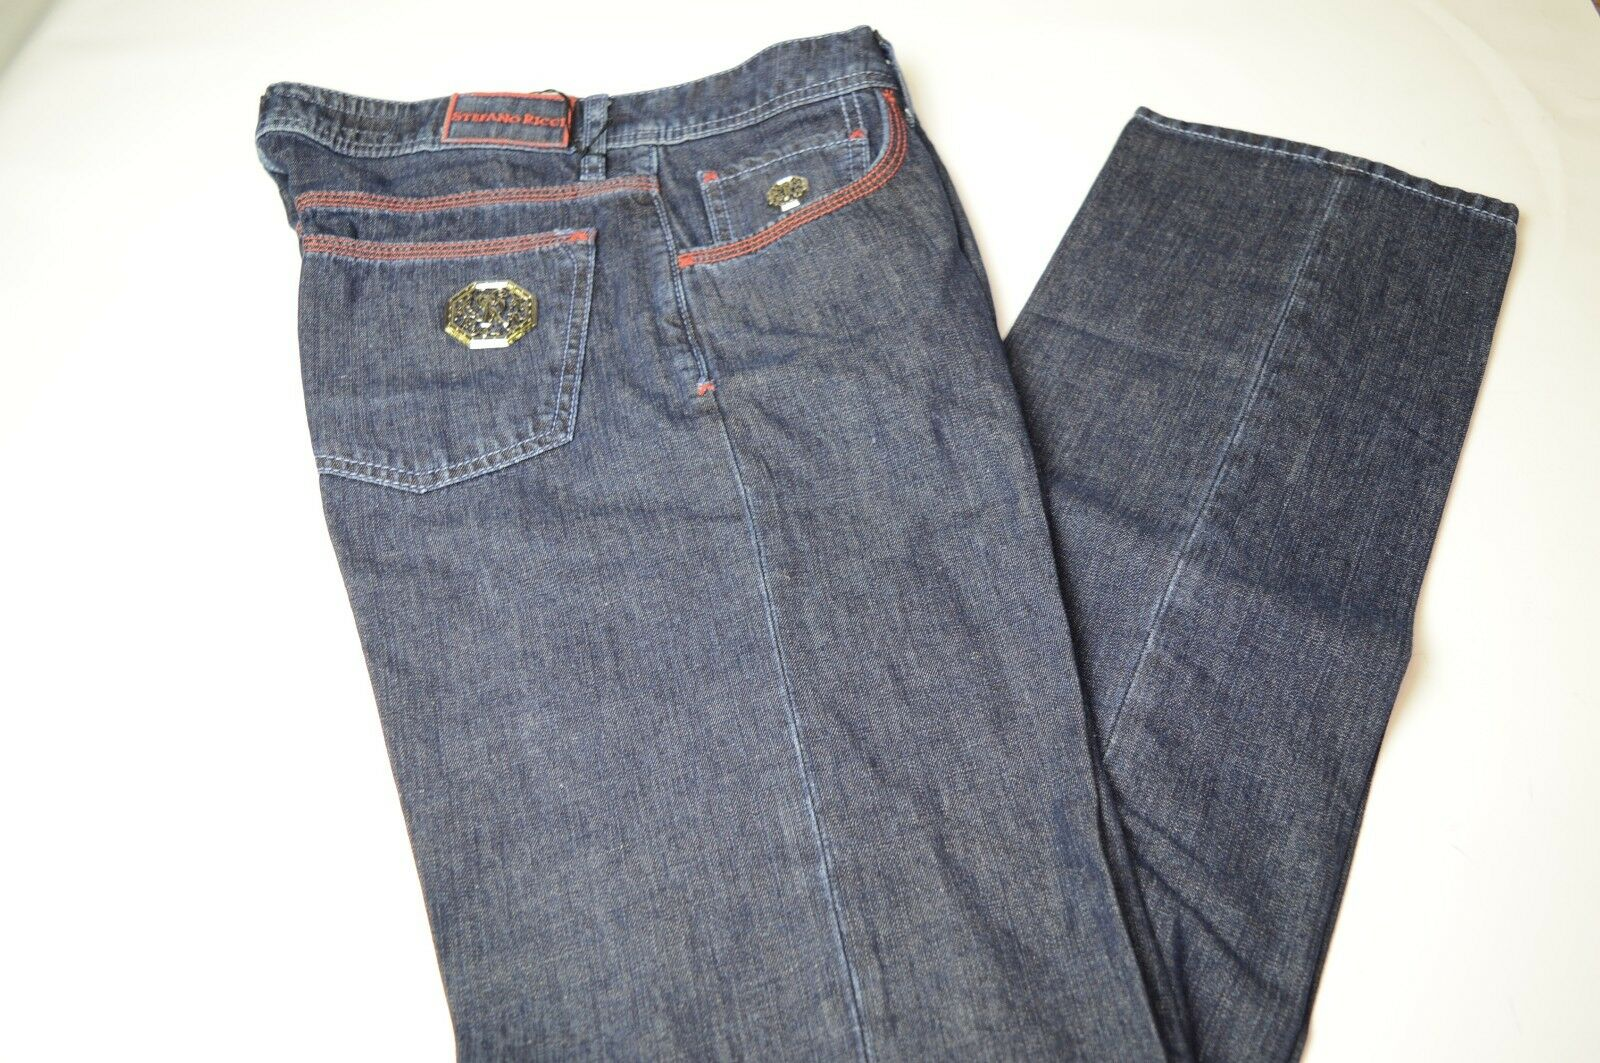 ebae8952 STEFANO RICCI Luxury Jeans Size 31 Us 47 Eu Made in (70A) NEW ITALY ...